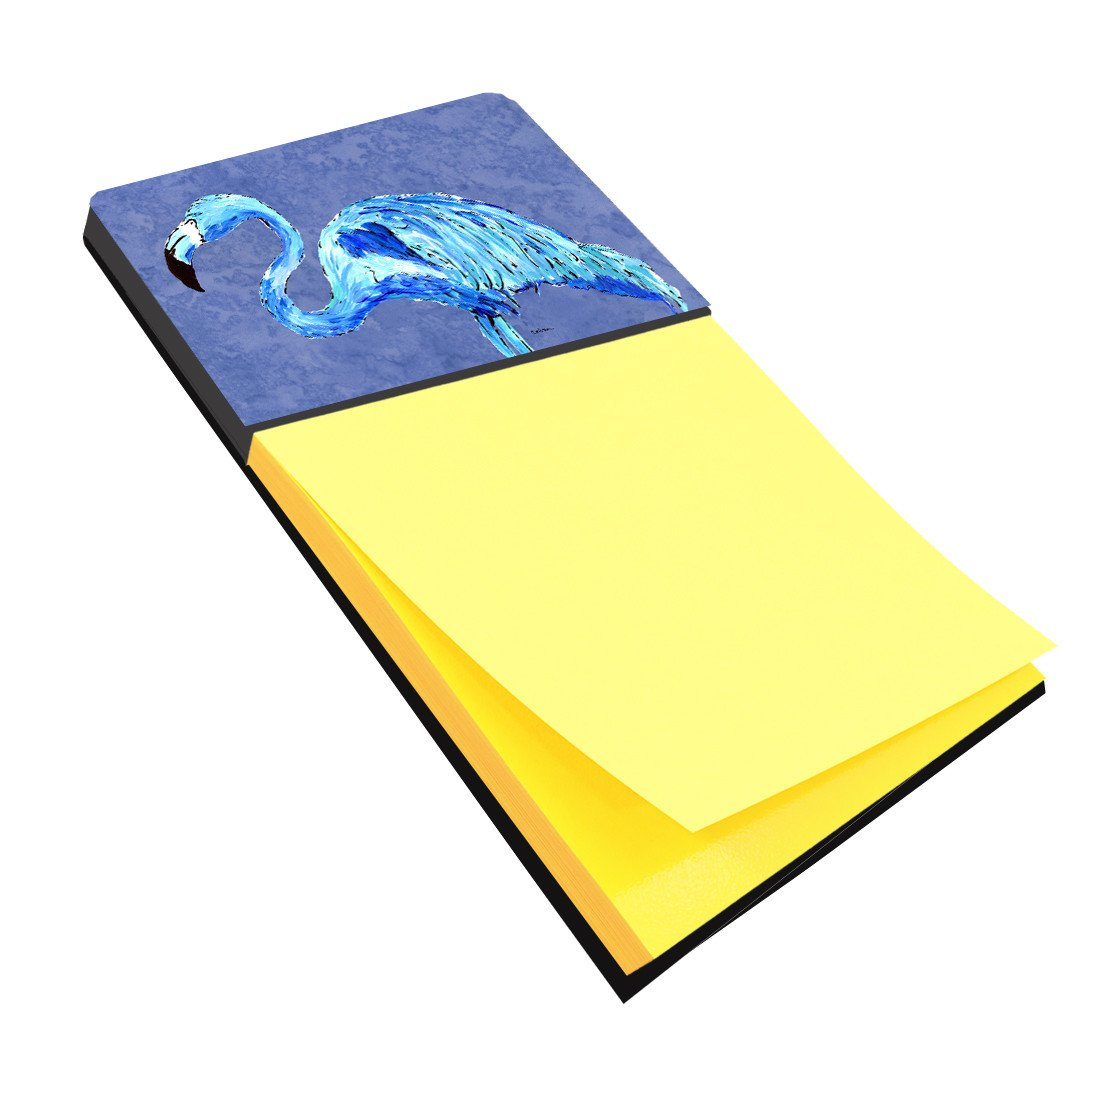 Buy this Flamingo On Slate Blue Refiillable Sticky Note Holder or Postit Note Dispenser 8873SN